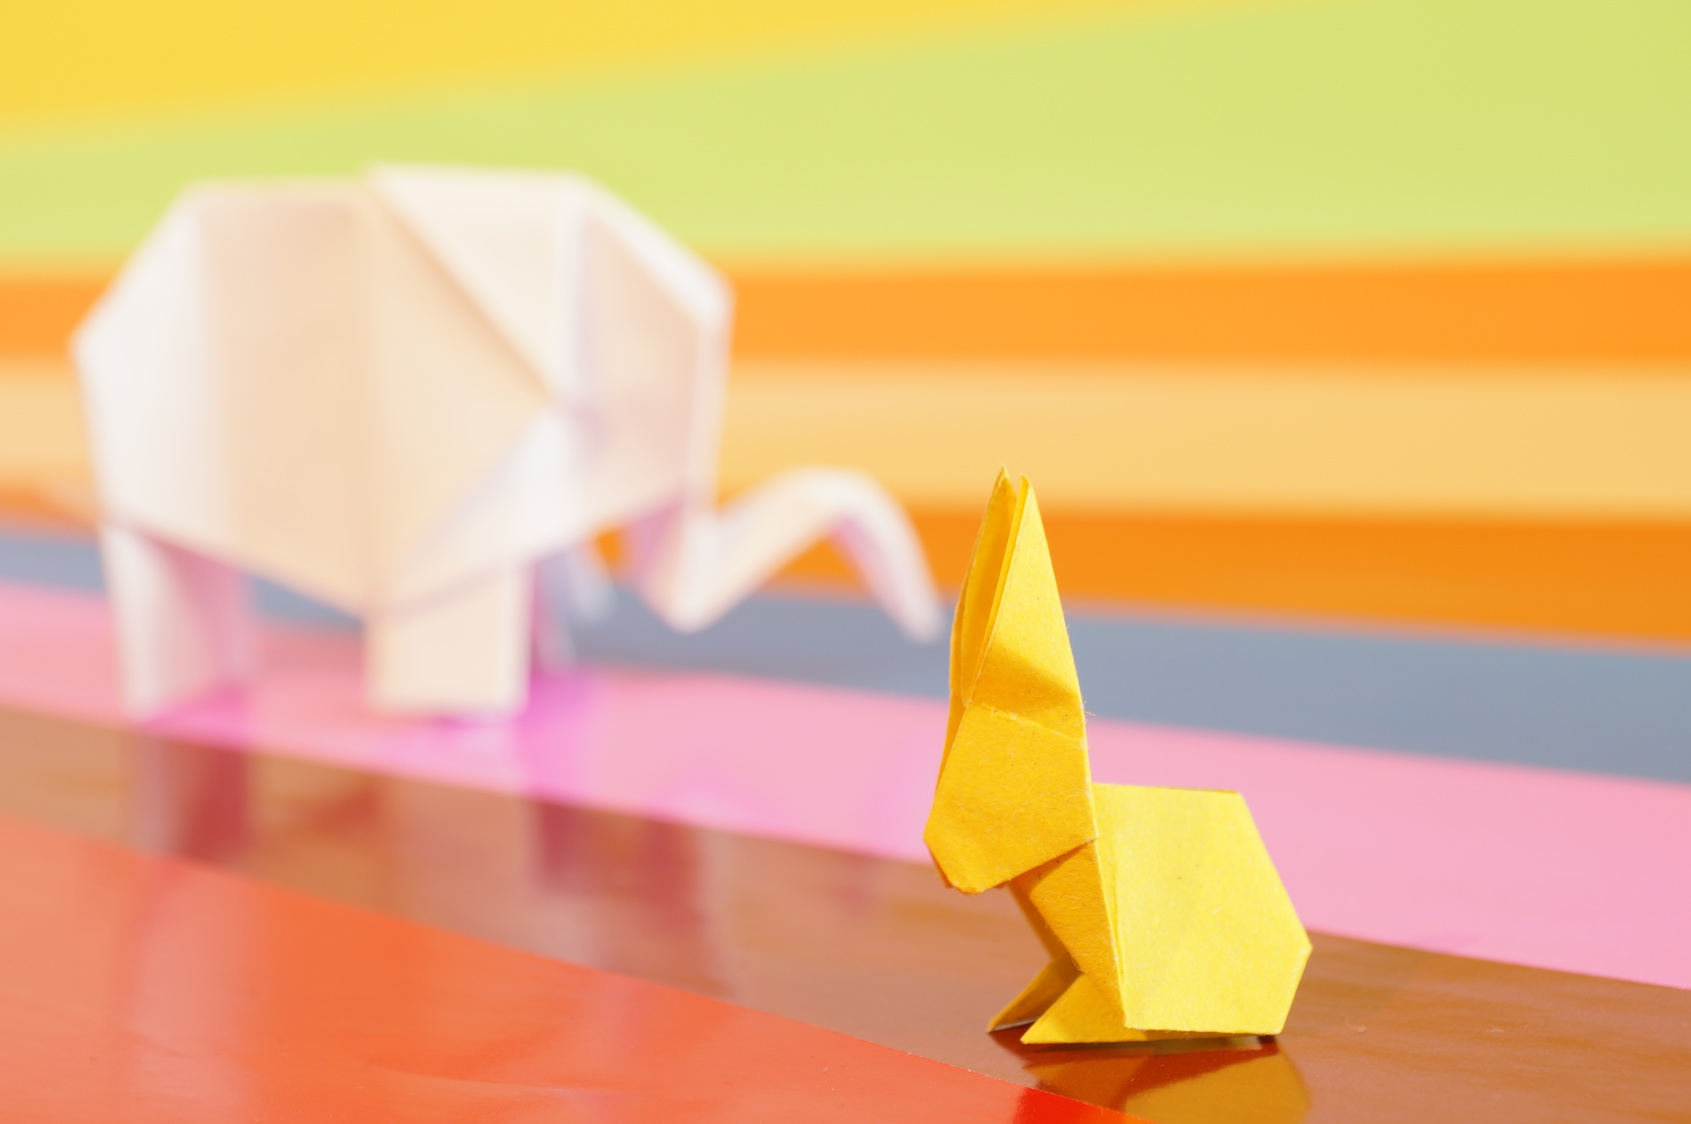 Origami Paper | How To Make An Origami Dove | Origami Animals ... | 1124x1691